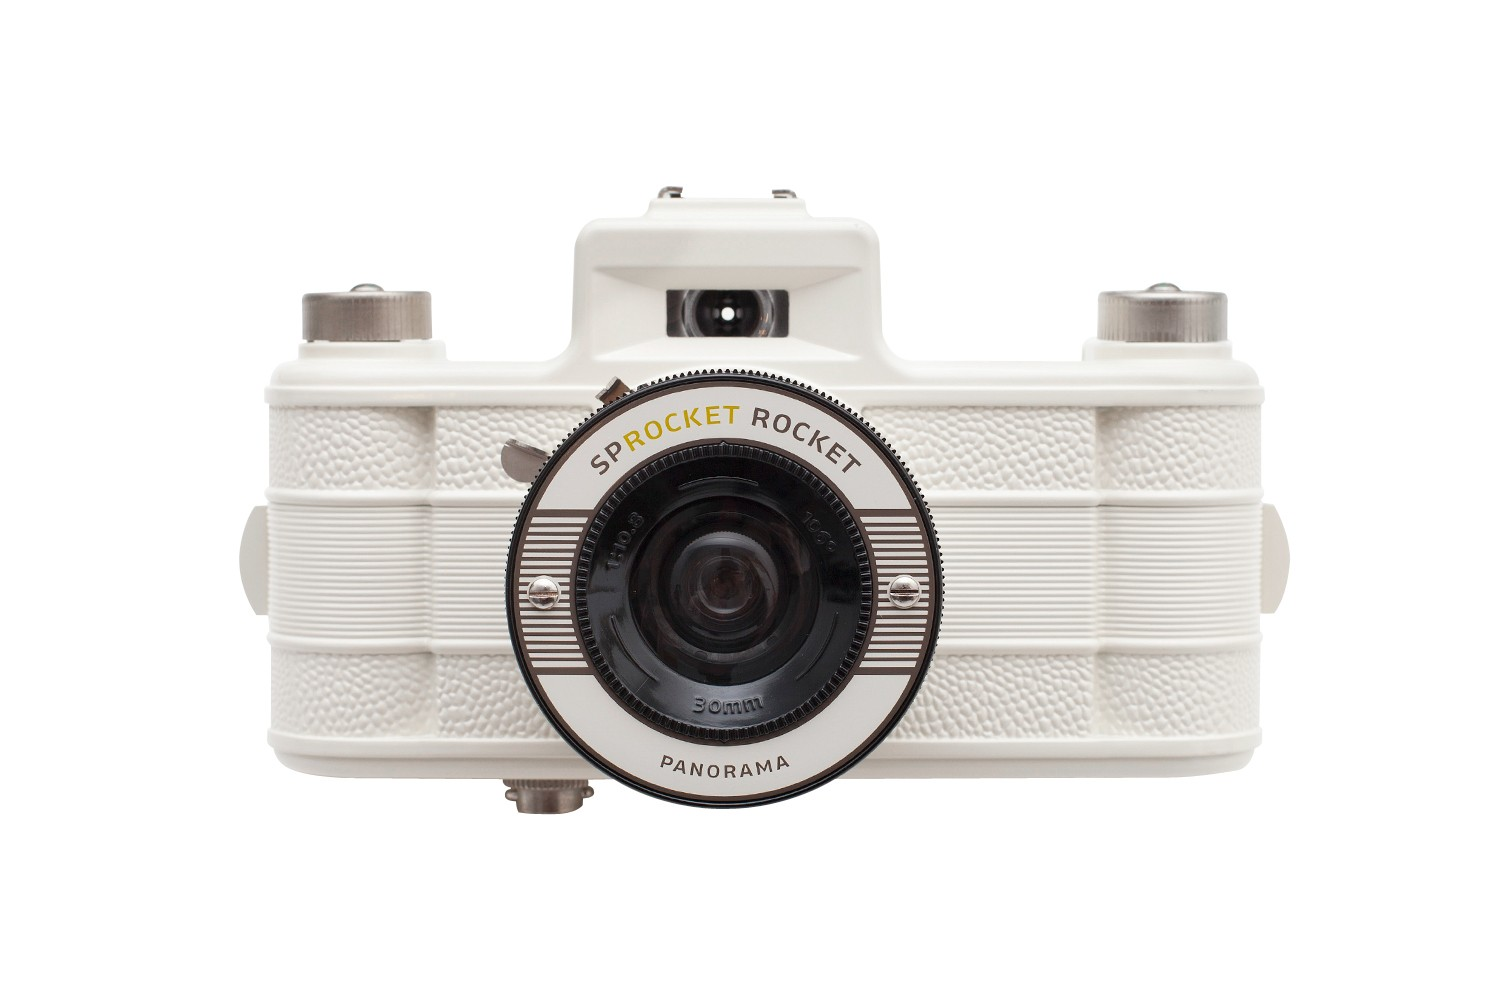 Sprocket Rocket Camera : Sprocket rocket times square edition · lomography shop